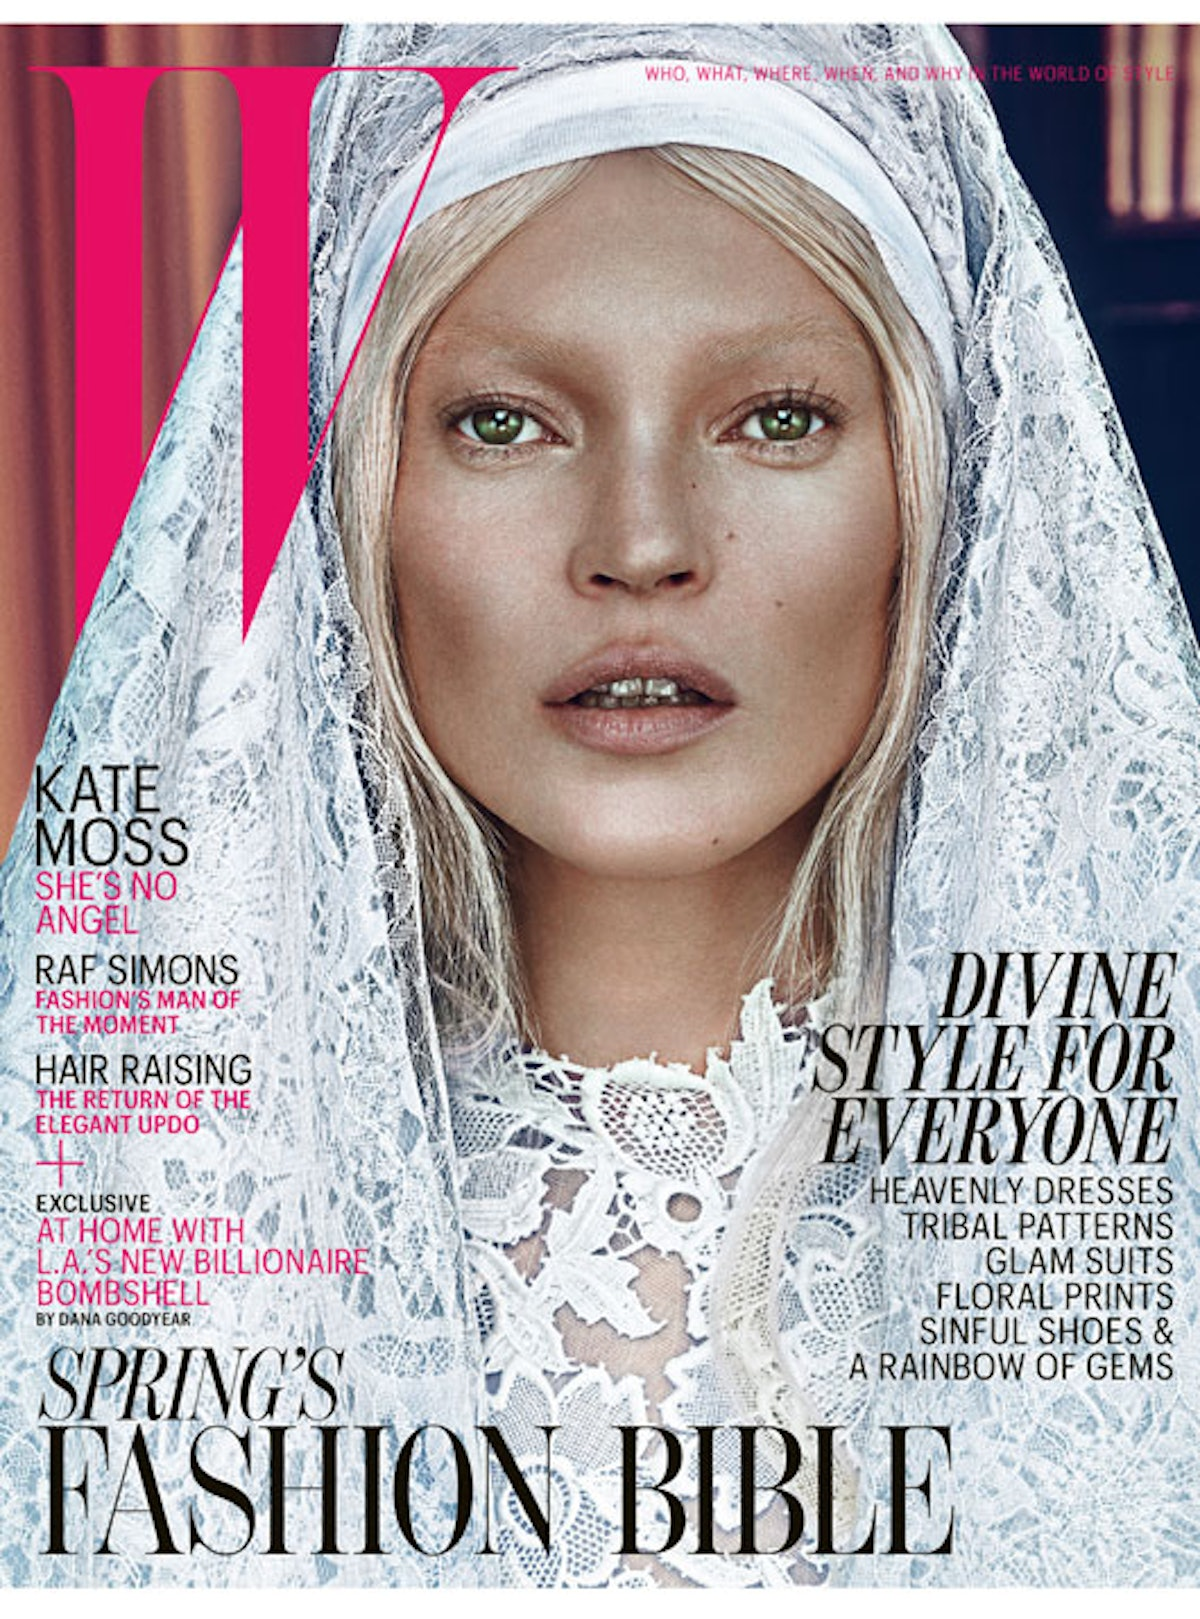 fass-kate-moss-cover-story-march-2012-13-l.jpg